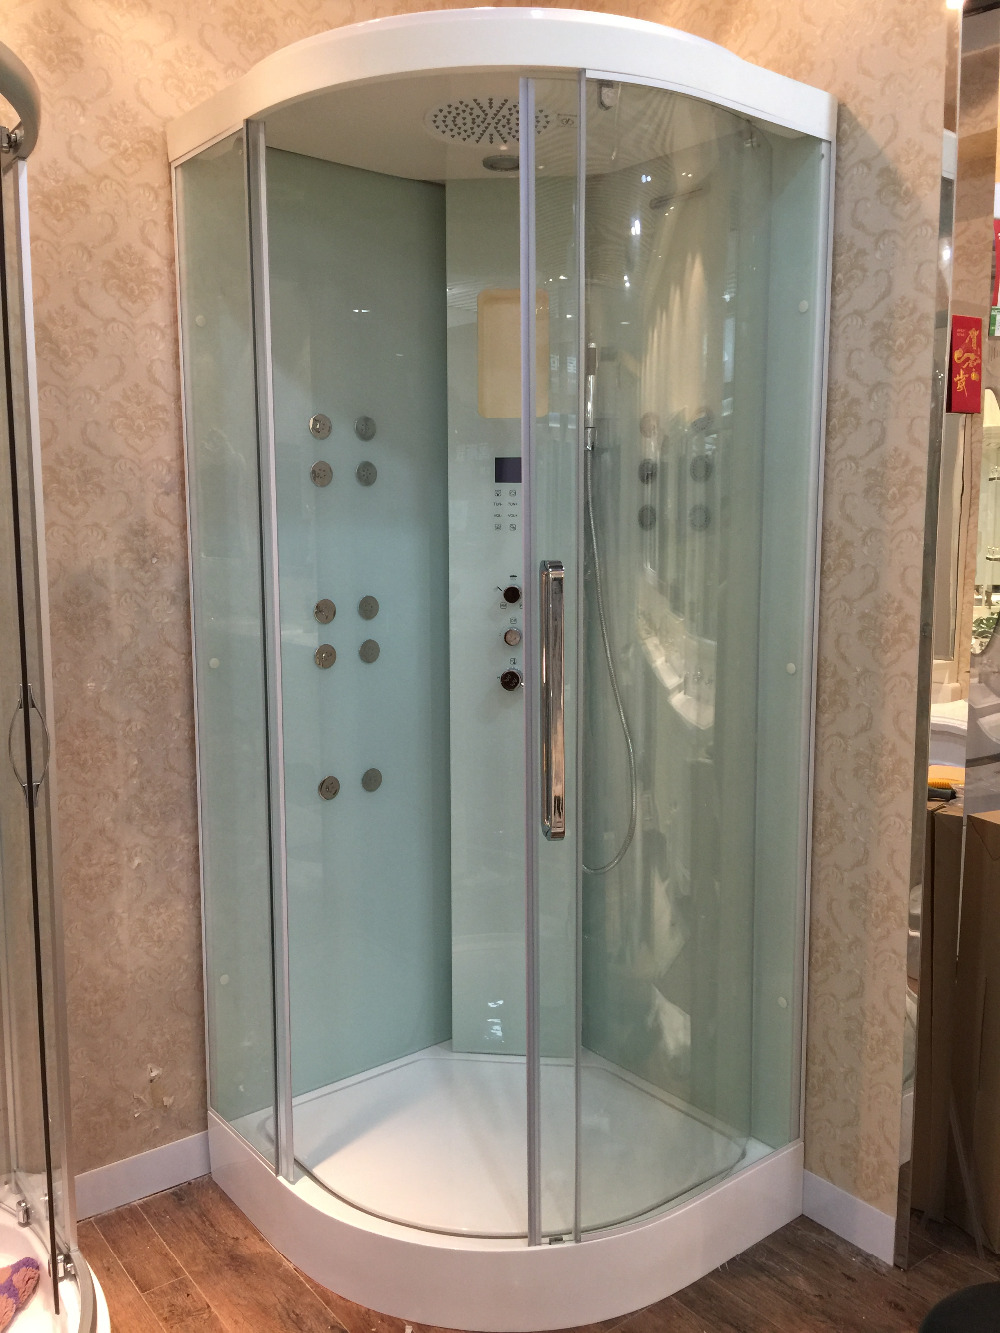 Amicable 900*900*2200mm Luxury Steam Shower Enclosure Bathroom Wet Steam Sauna Cabin Jetted Massage Thermostatic Faucet8055 A Great Variety Of Goods